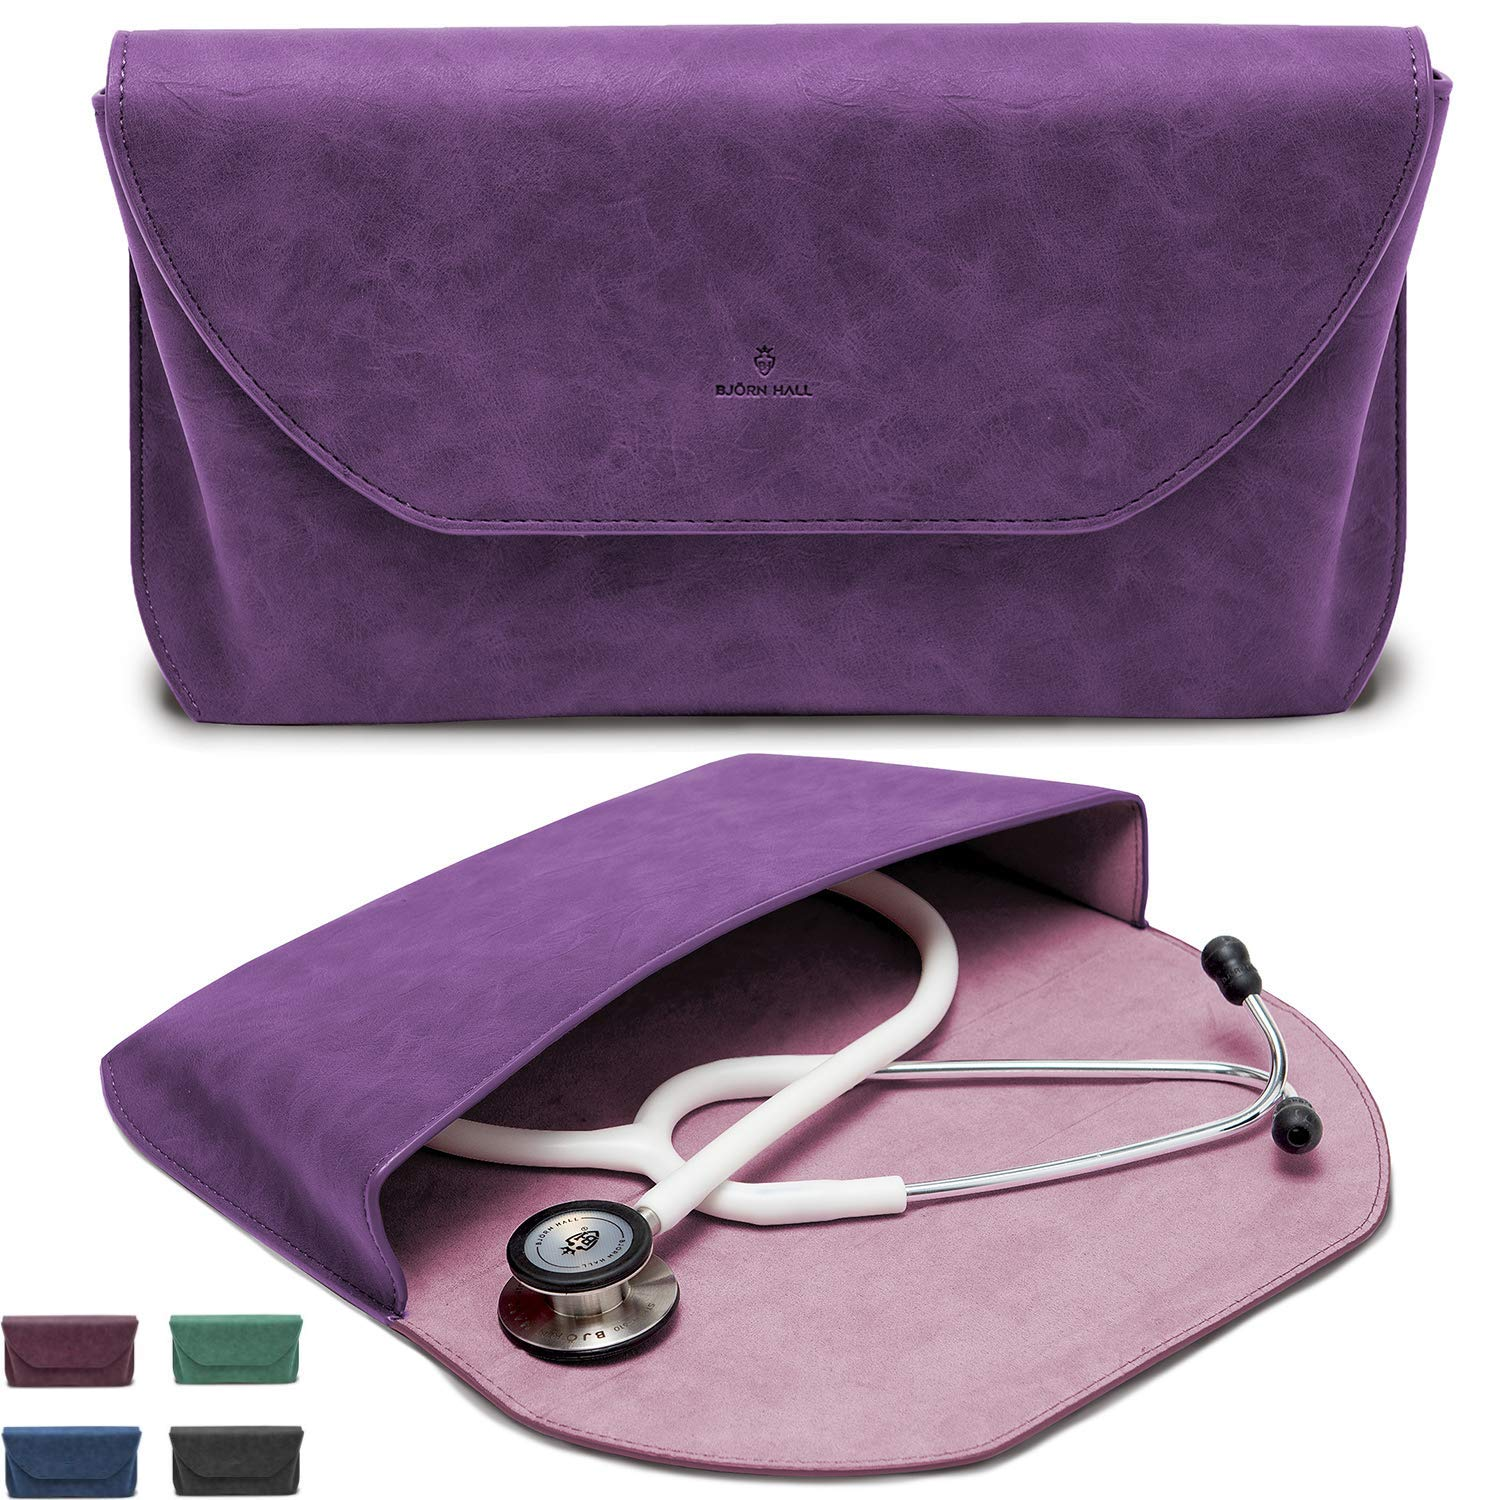 BJ RN HALL Prestige Leather Stethoscope Case Fits 3M Littmann Stethoscope Classic III, Lightweight II SE, Cardiology IV, MDF Designer PU Leather Carrying Case Nurse Doctor Gift Purple Rain